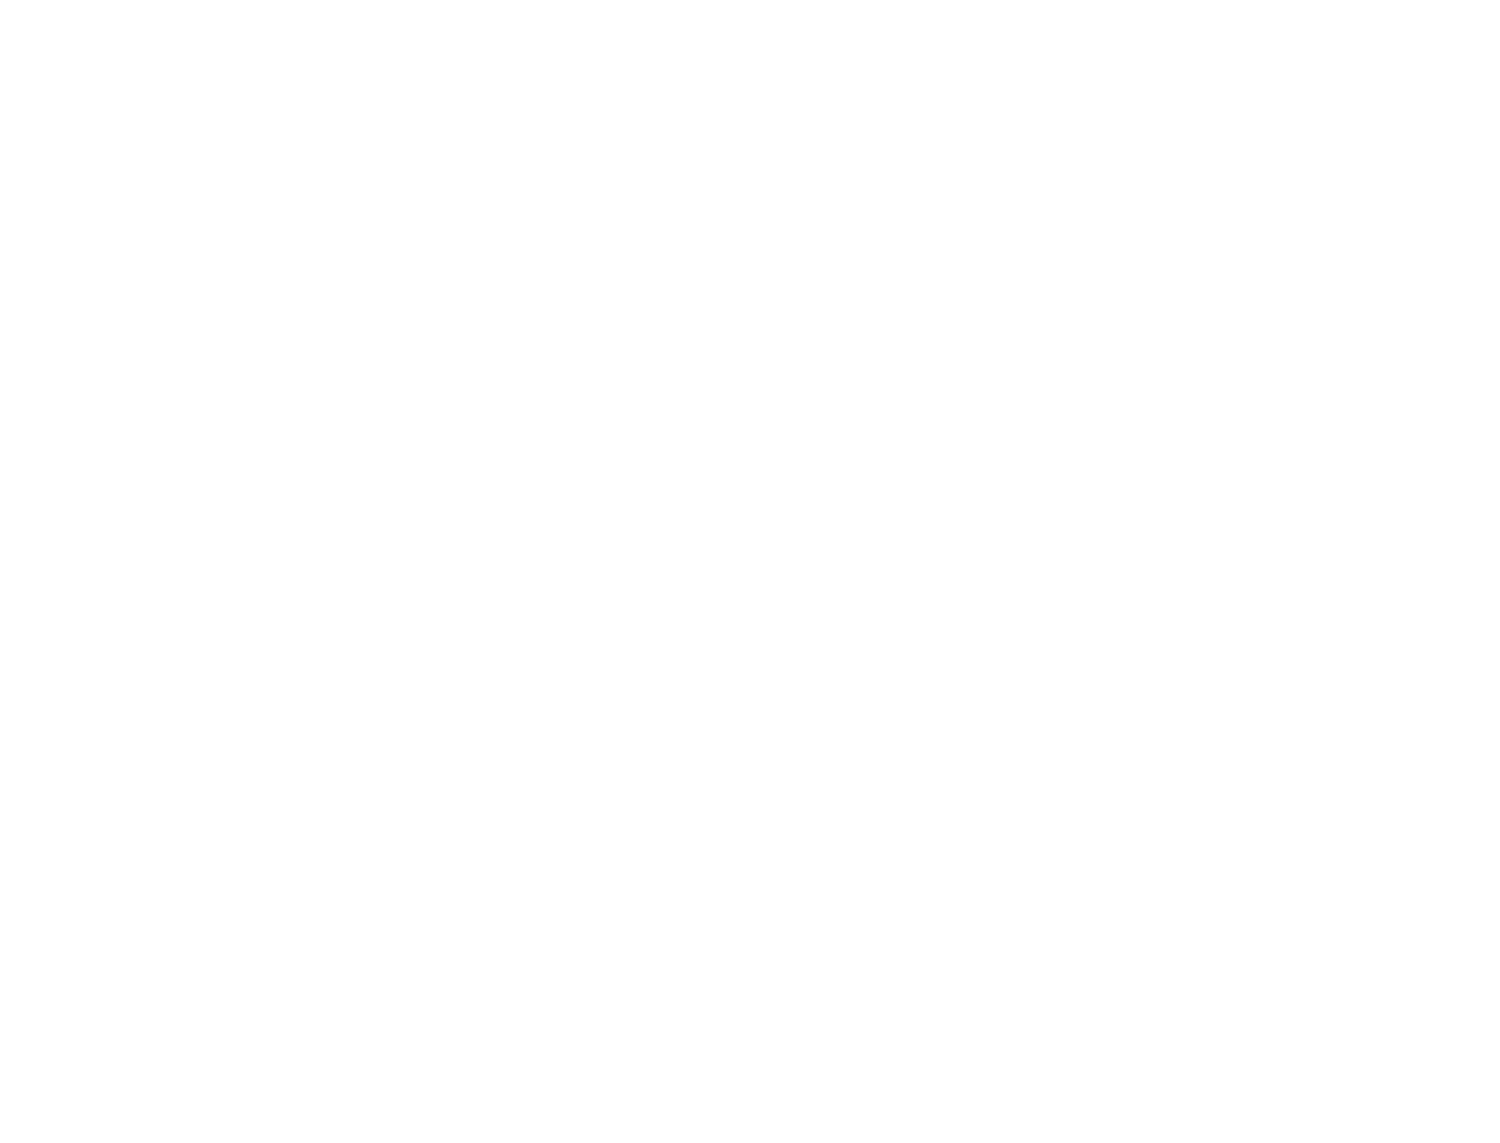 Joseph Dart photography